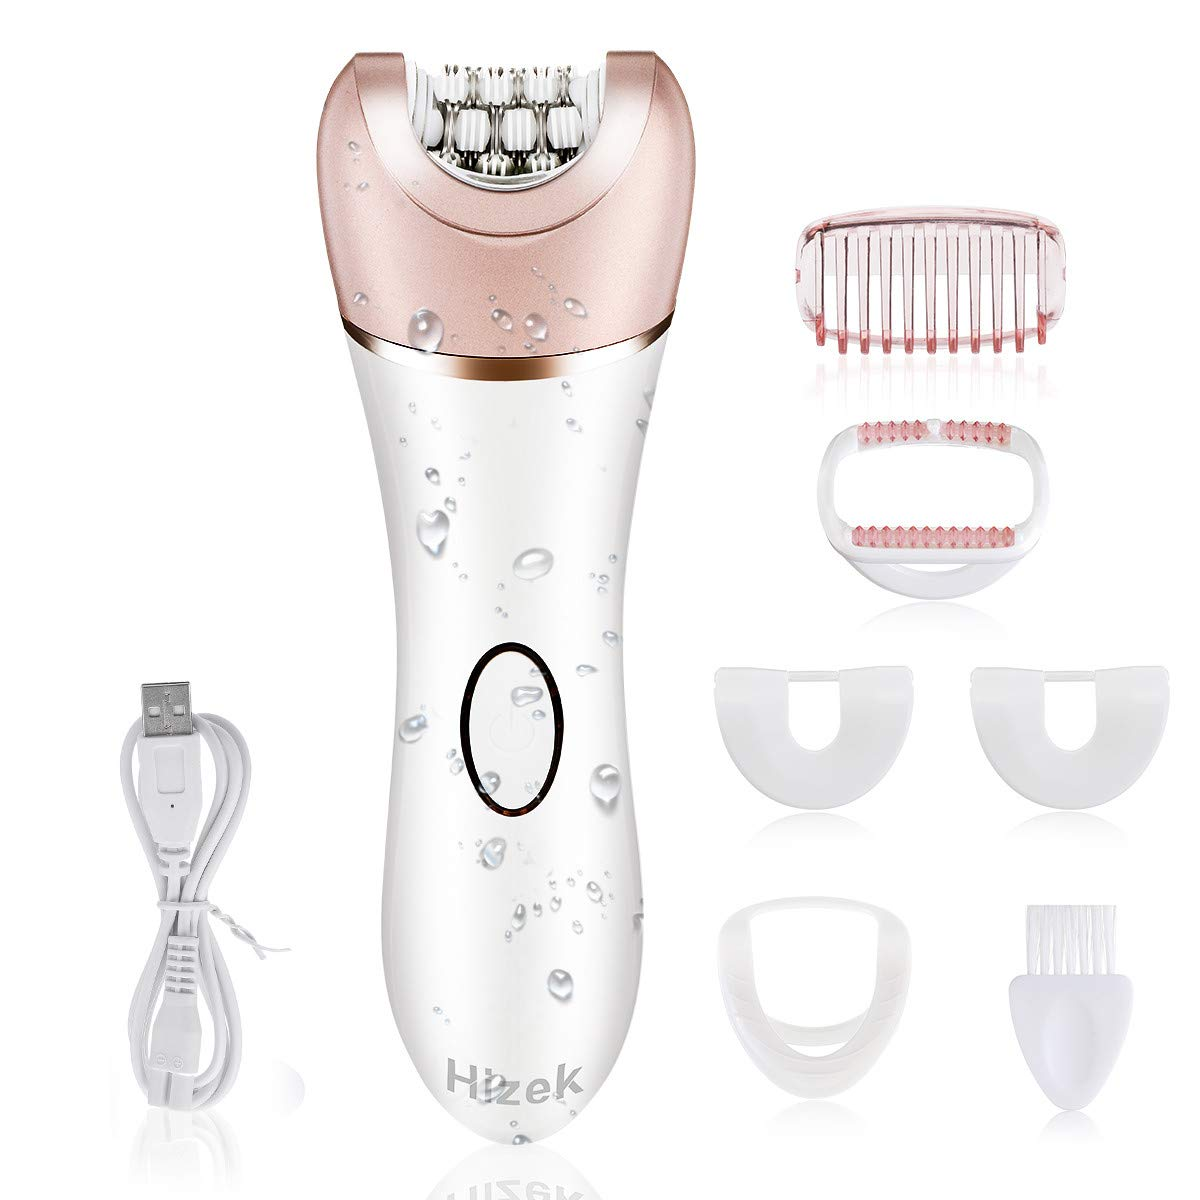 14 Best Epilator for Women [year] Reviews for Bikini, Face, Legs 14